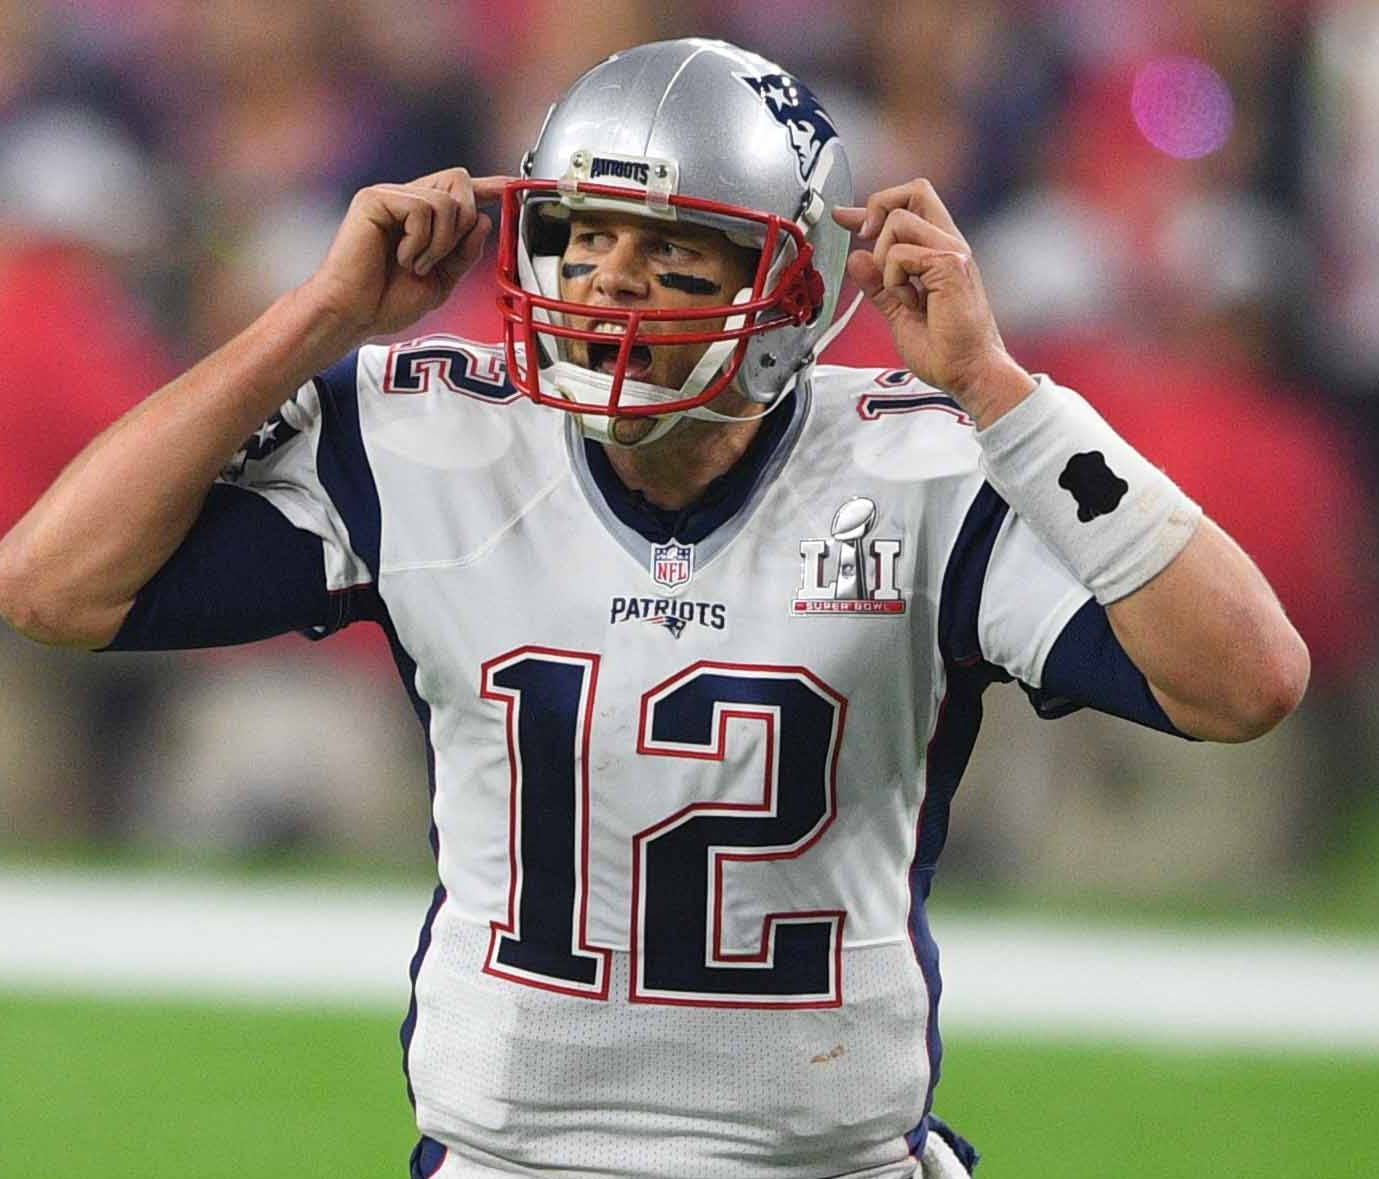 The last two Super Bowl jerseys of Patriots QB Tom Brady had gone missing before being recovered.